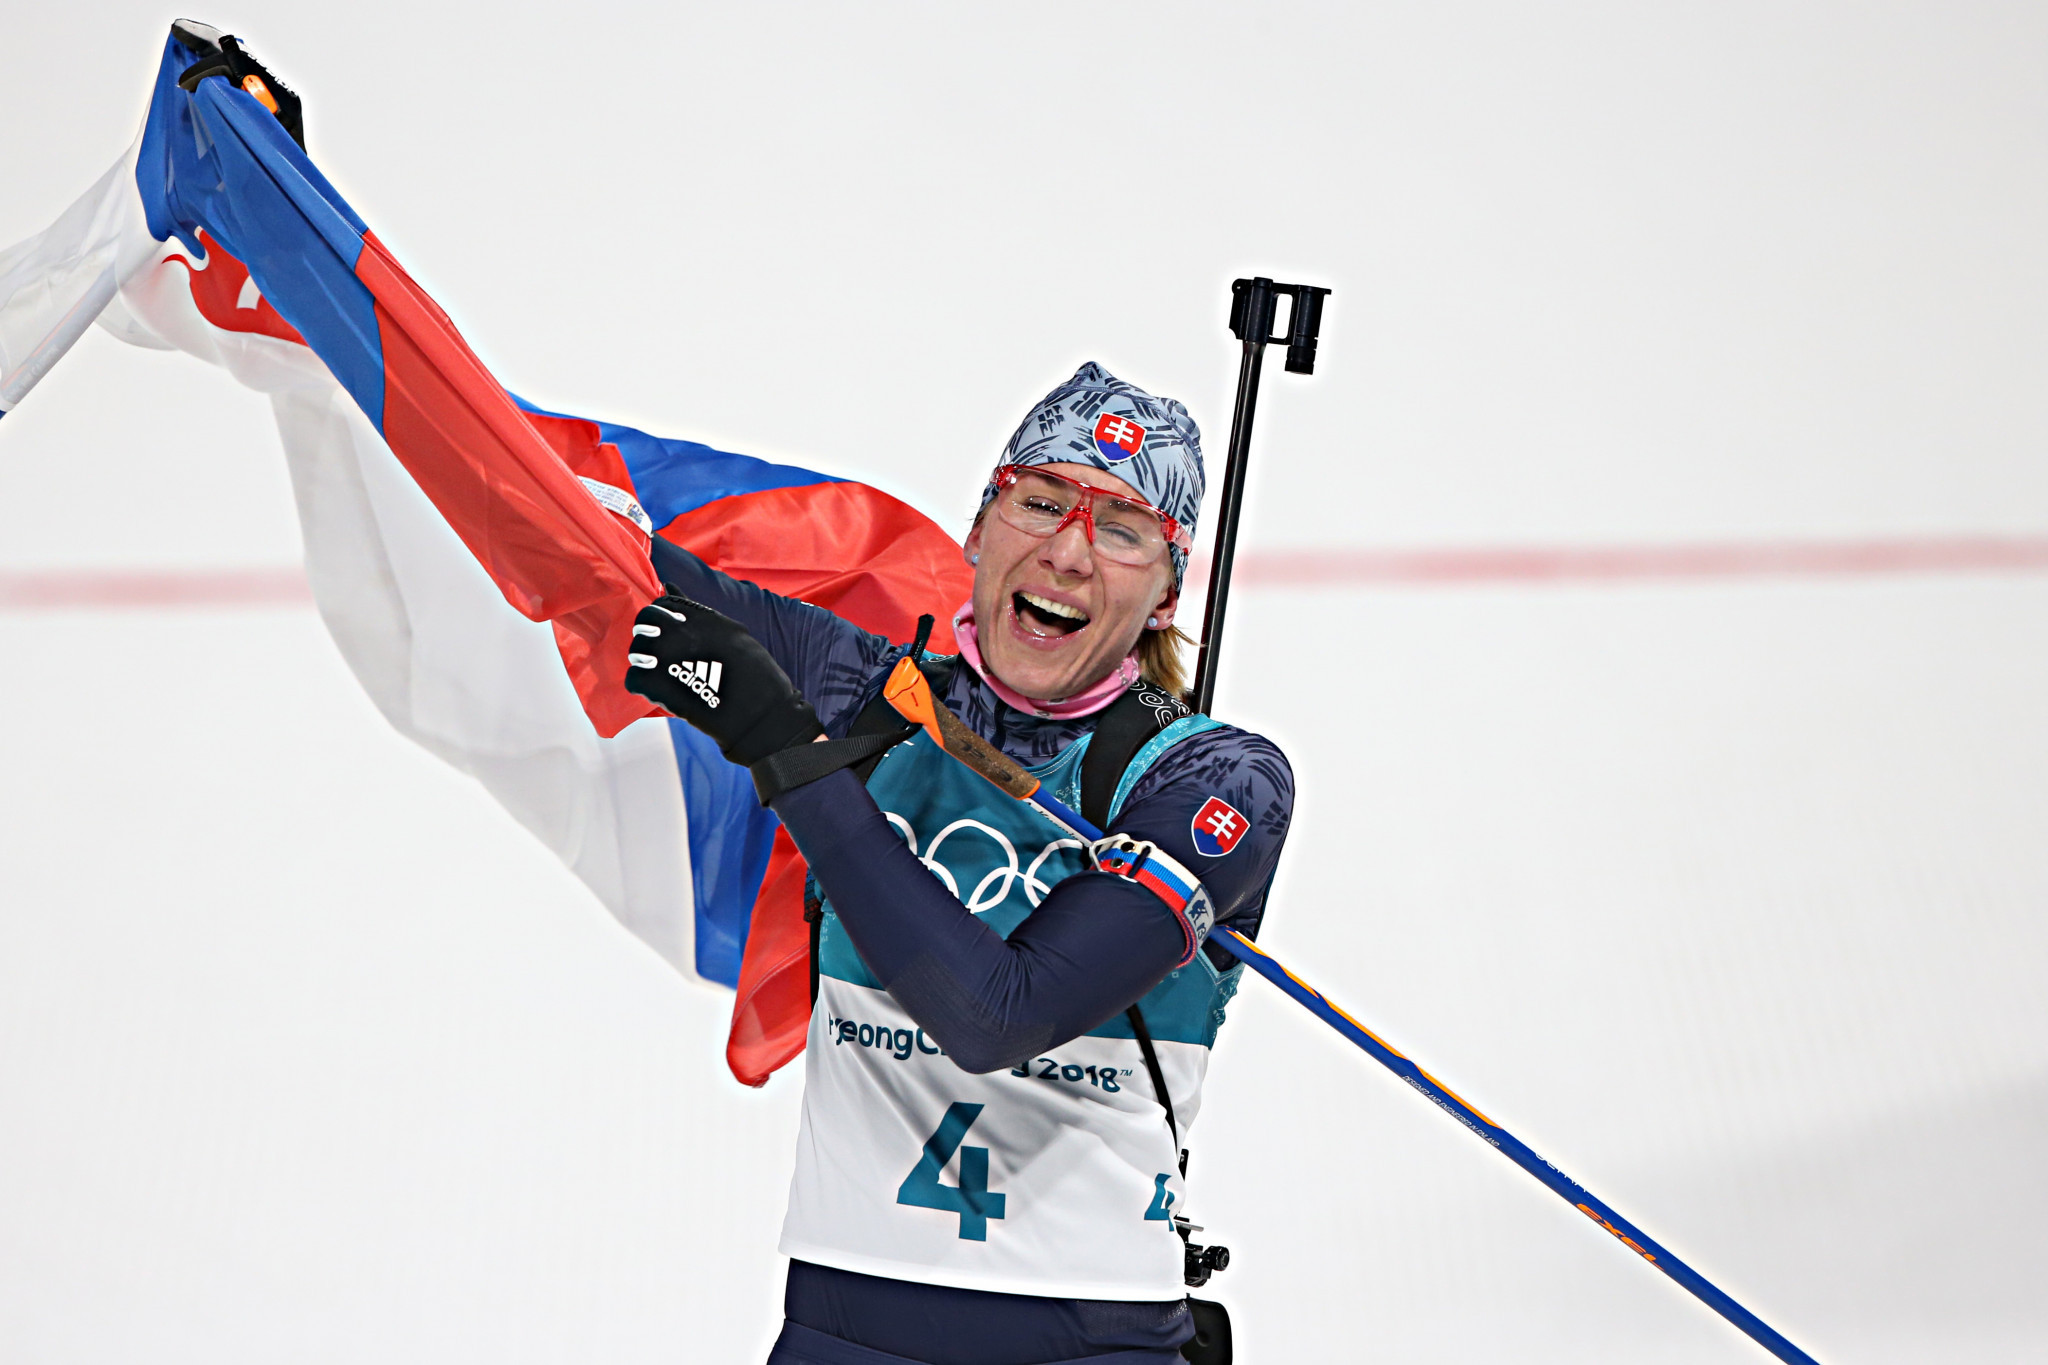 Olympics biathlon Women's 12.5 km Mass Start medal results, highlights and more